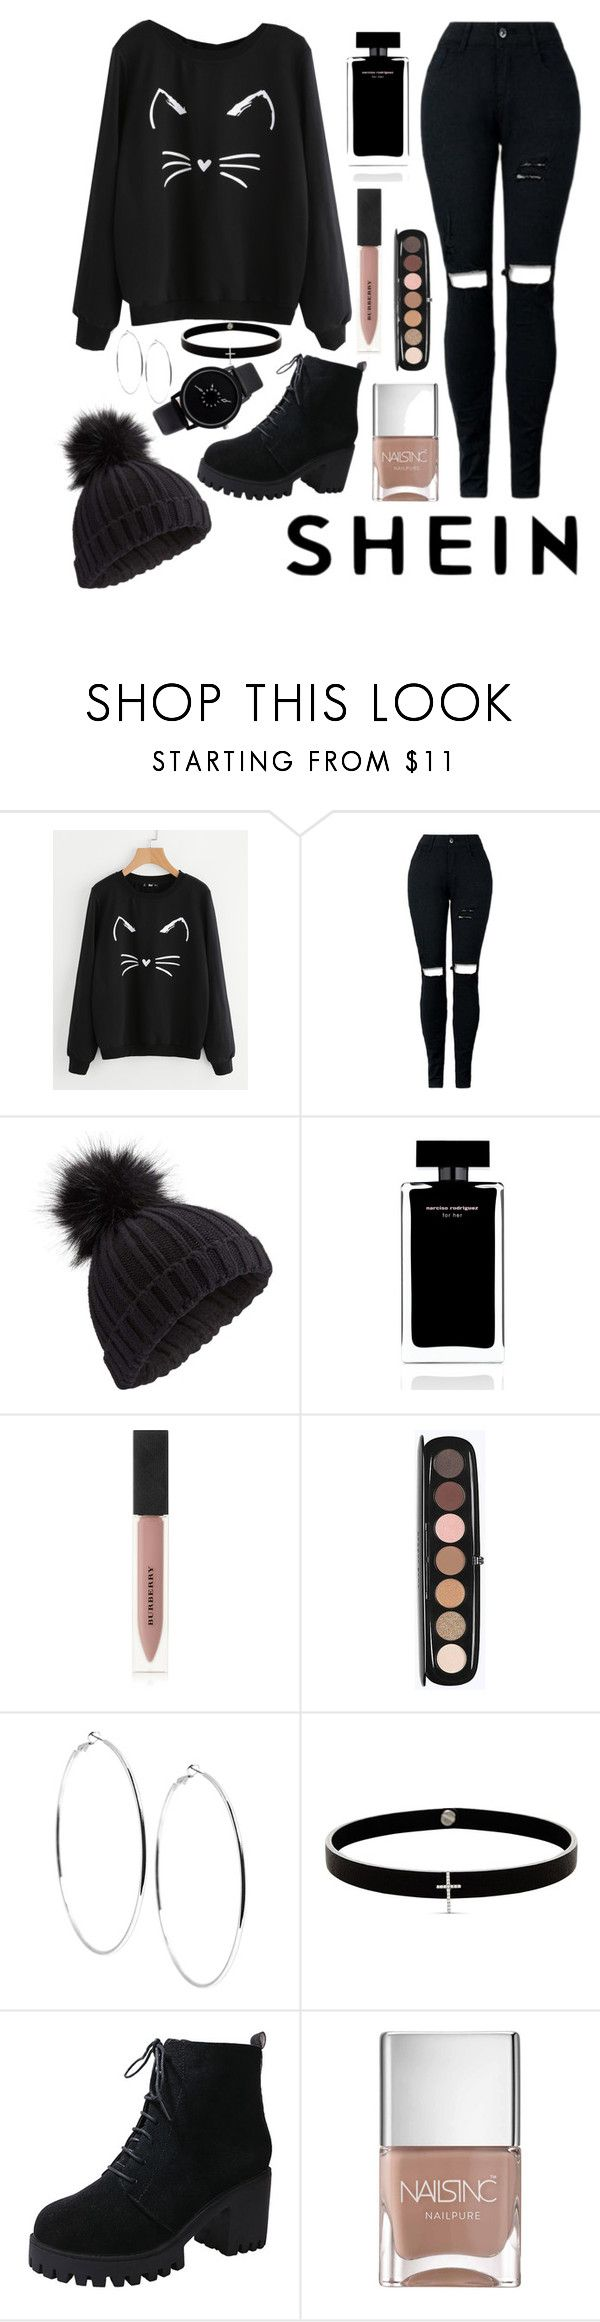 """Shein Black Cat"" by indigoizzy247 ❤ liked on Polyvore featuring Miss Selfridge, Narciso Rodriguez, Burberry, Marc Jacobs, GUESS, Lynn Ban and Nails Inc."